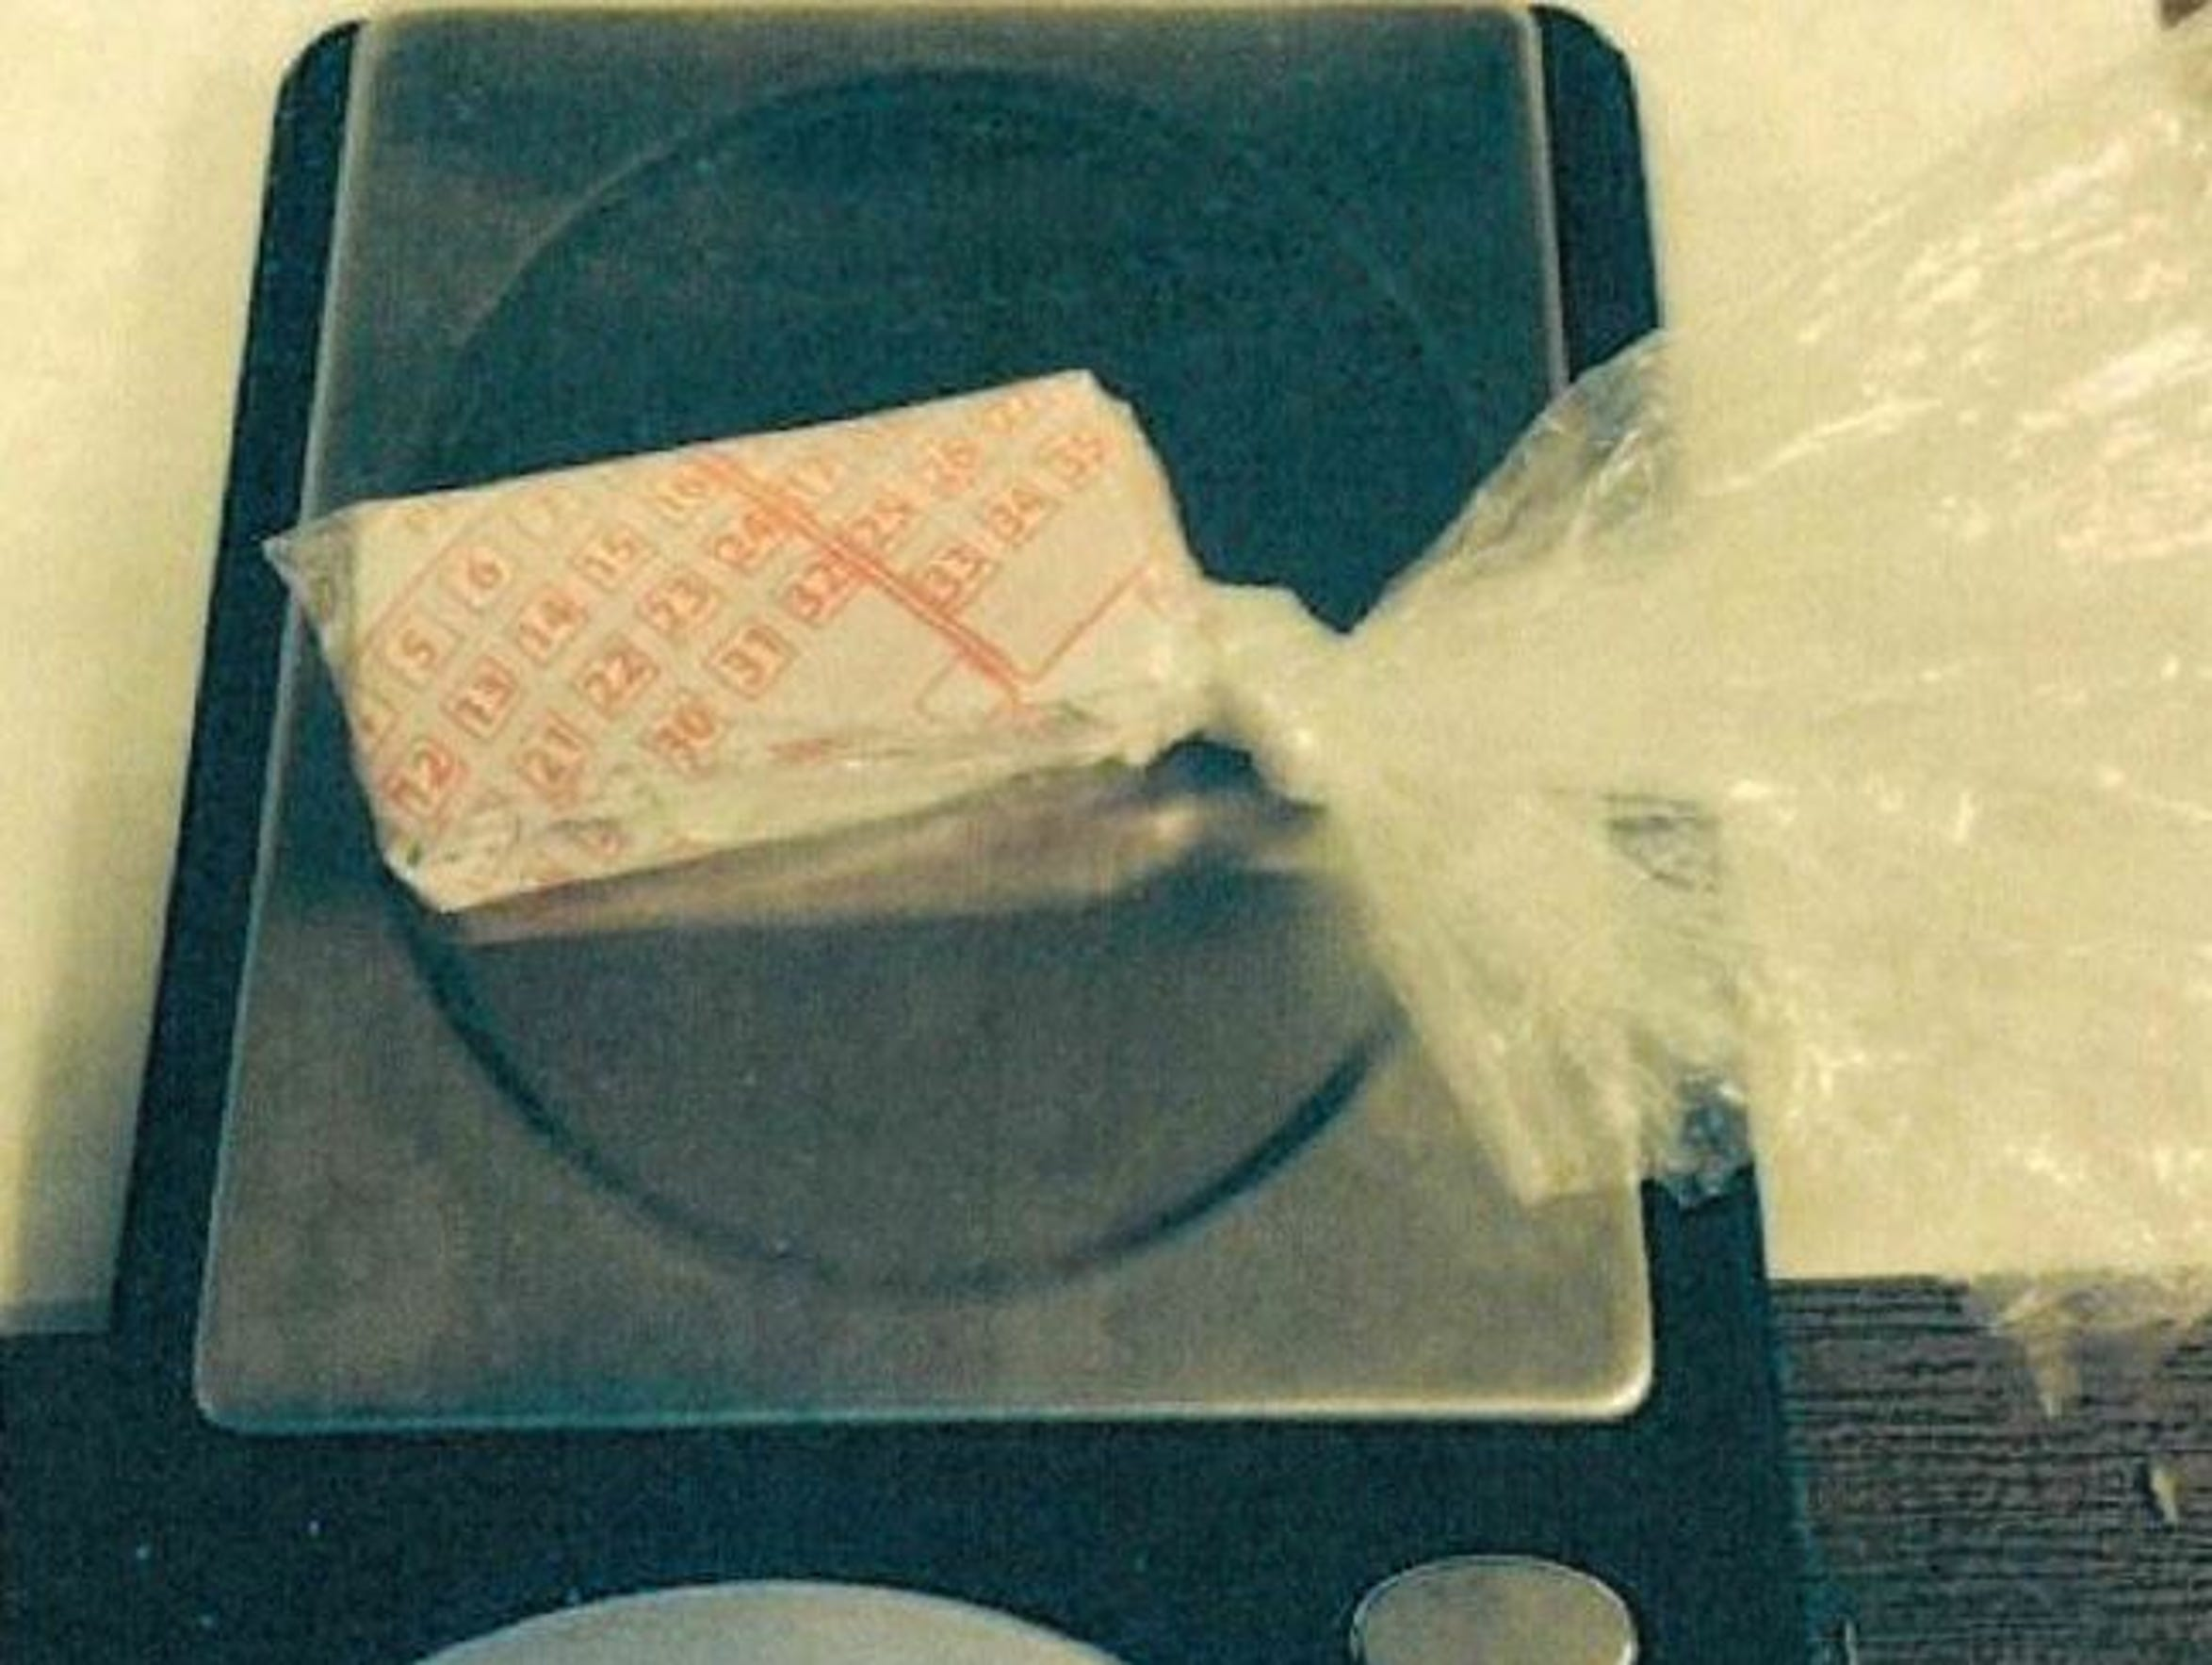 Suspected heroin wrapped in a lottery slip.